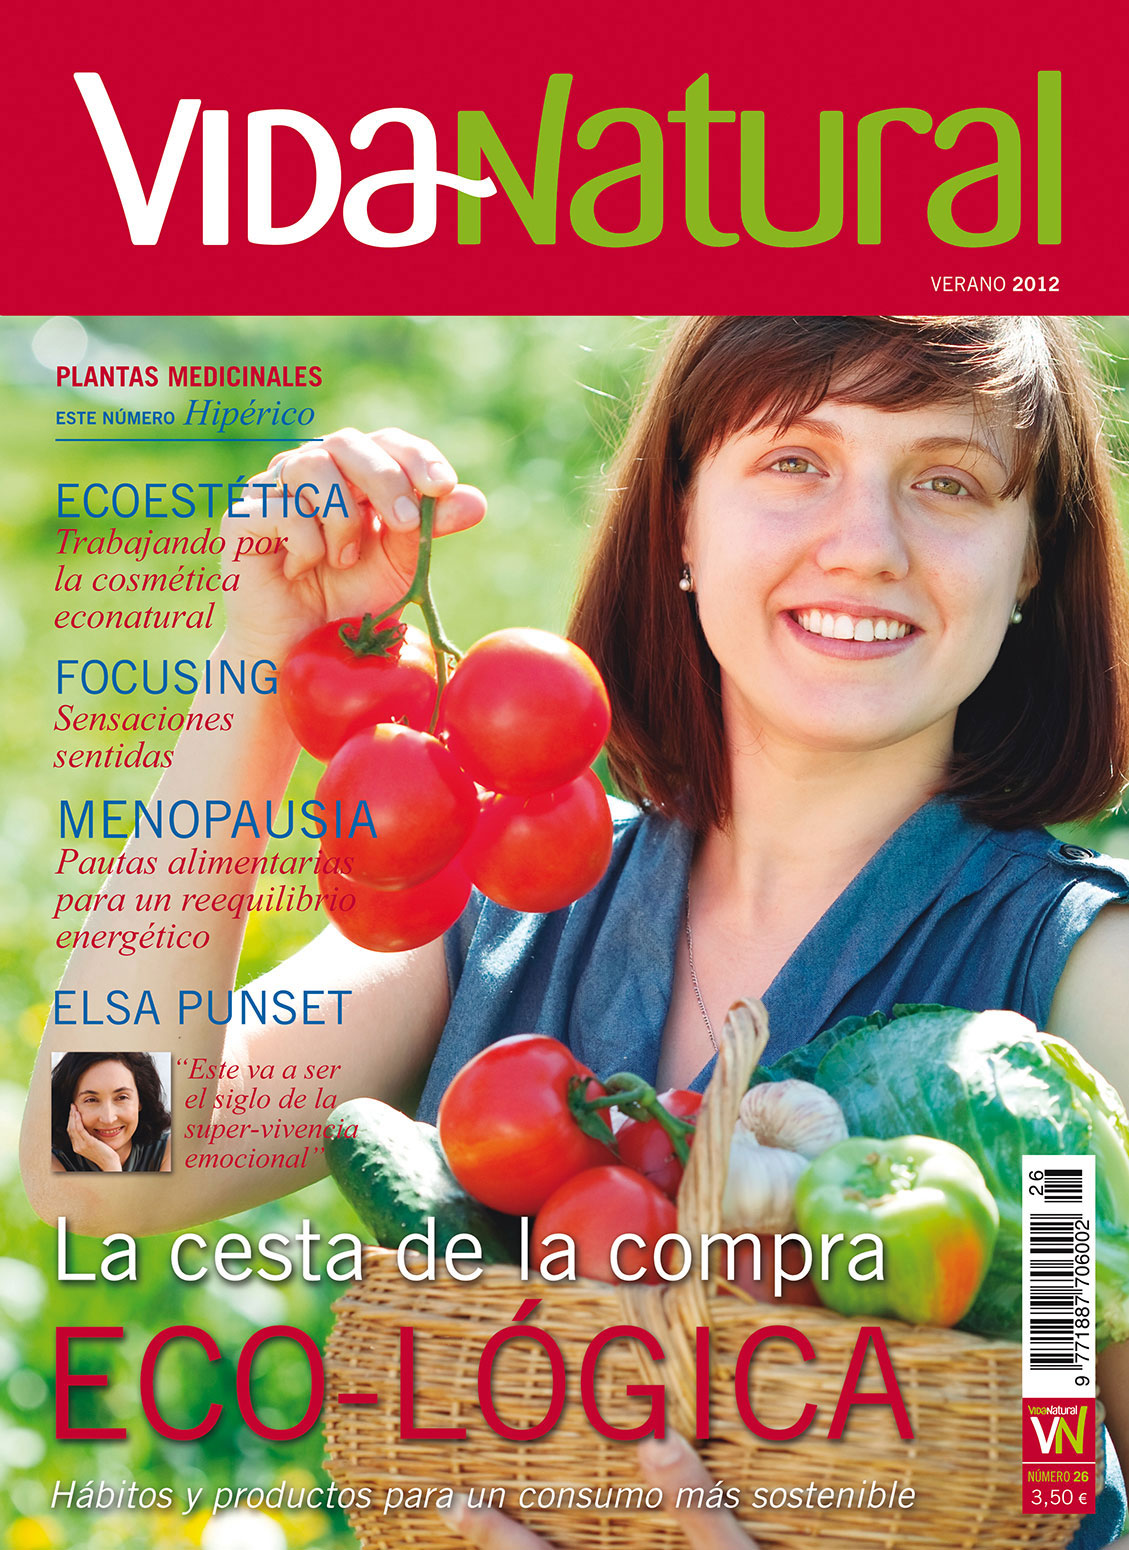 Revista Vida Natural nº 26